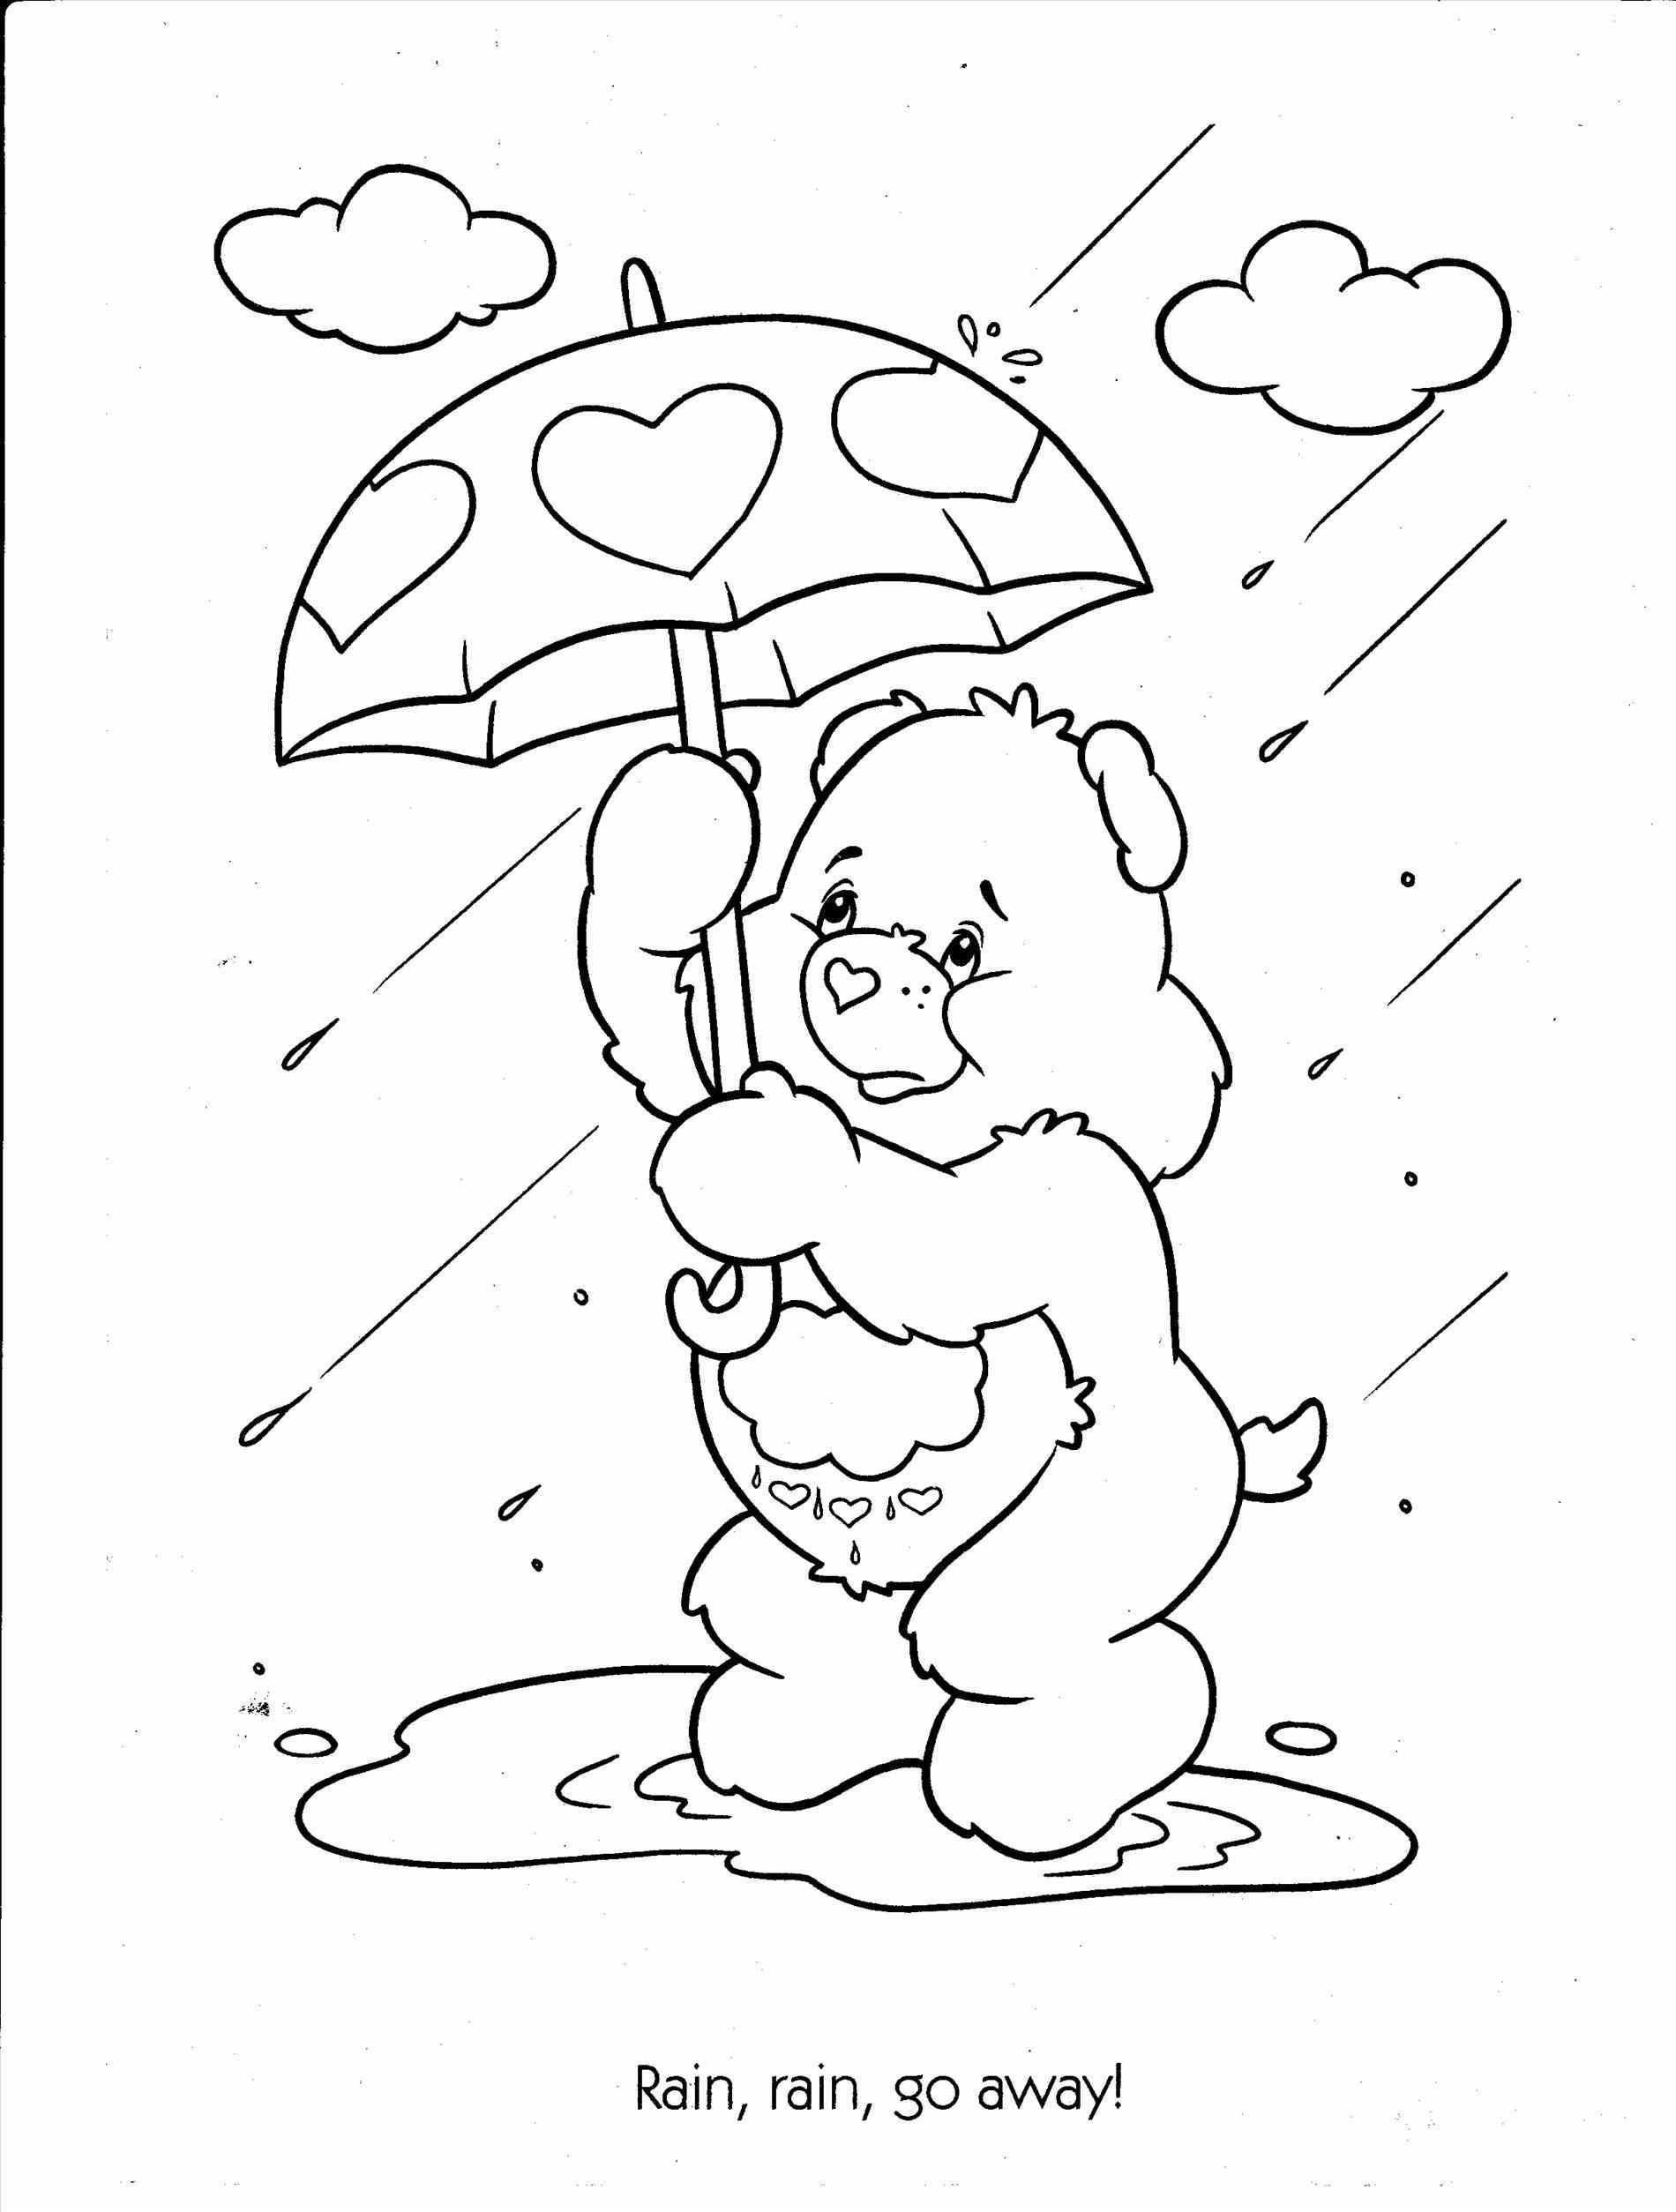 25 Wonderful Picture Of Rainy Day Coloring Pages Davemelillo Com Bear Coloring Pages Witch Coloring Pages Cartoon Coloring Pages